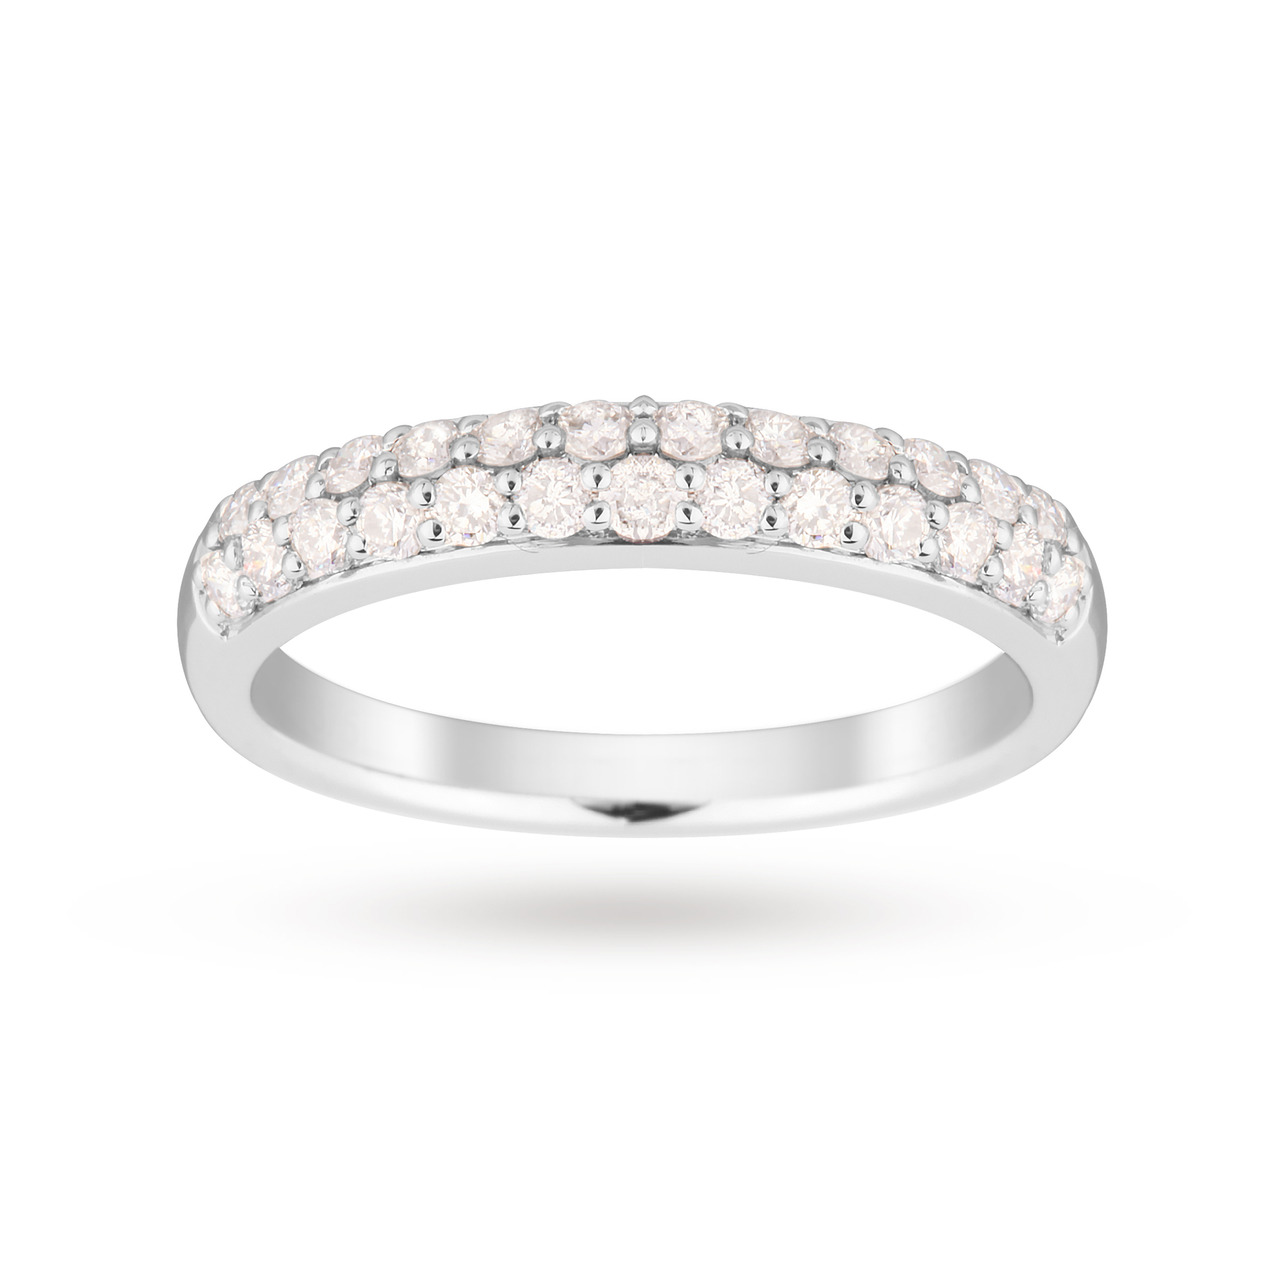 9ct White Gold 0.50 Total Weight Eternity Ring - Ring Size M